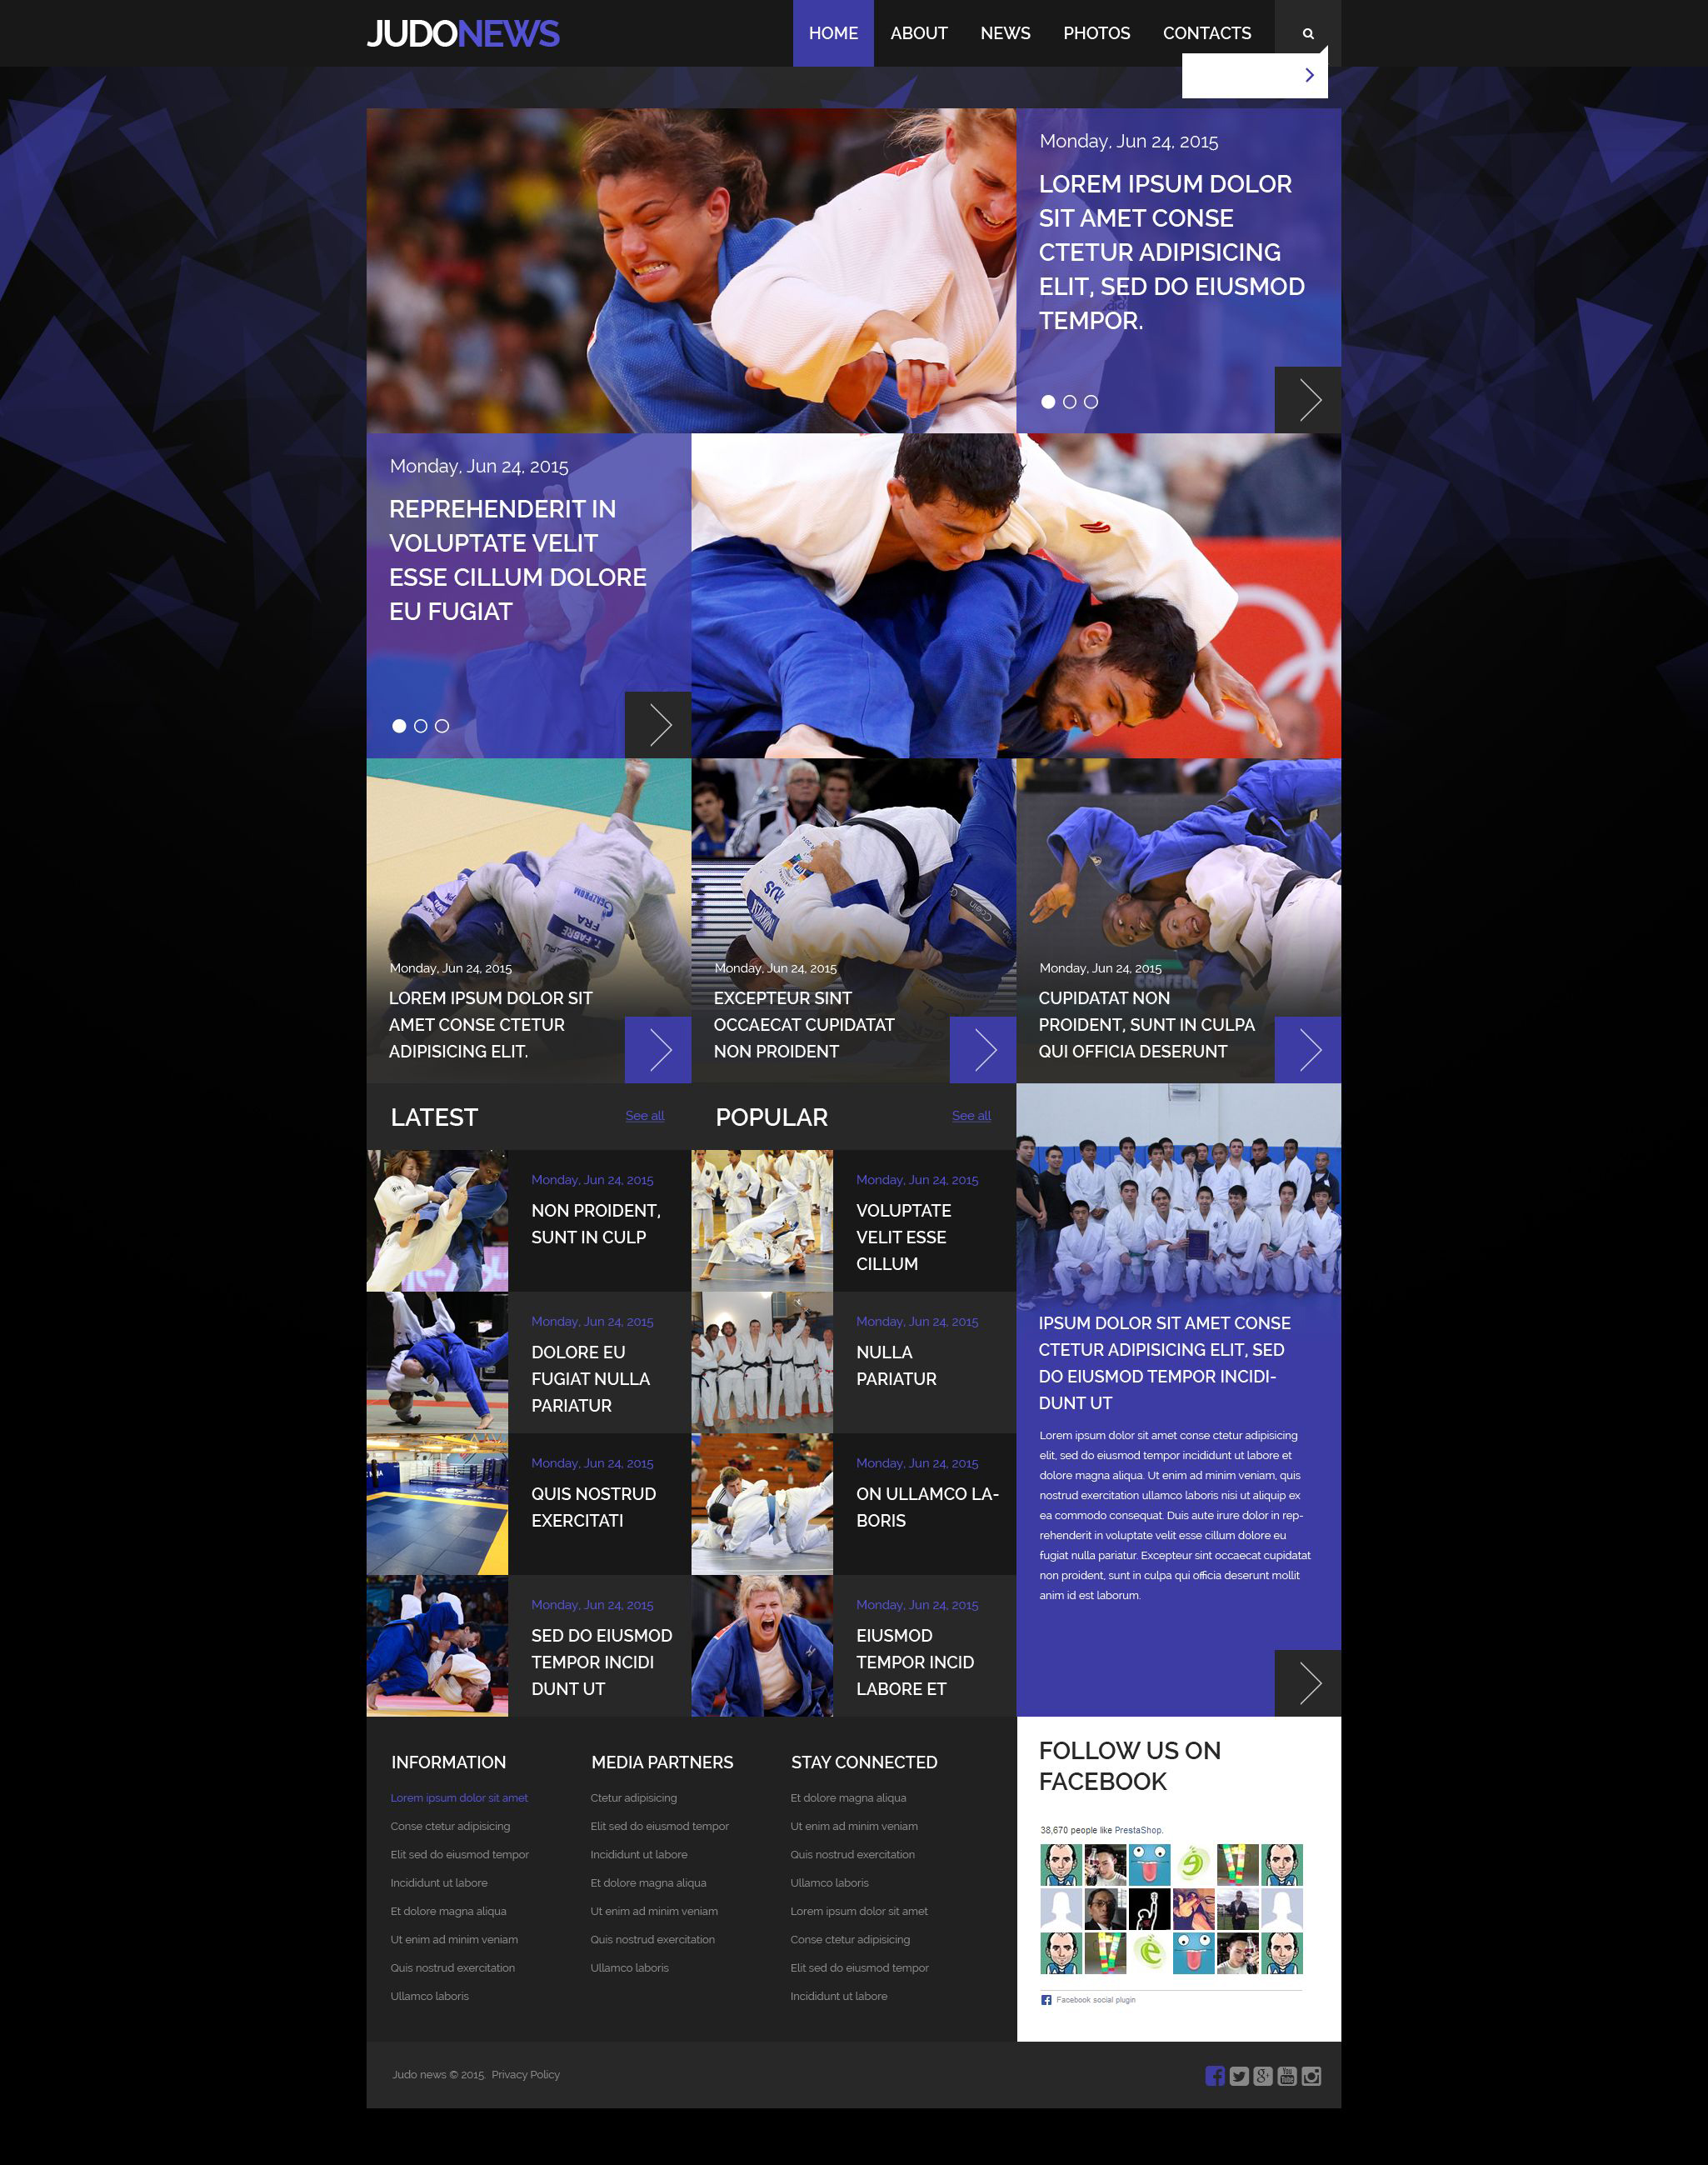 The Judo News Martial Responsive Javascript Animated Design 52958, one of the best website templates of its kind (sport, most popular), also known as Judo News martial website template, arts website template, asia website template, asian website template, asians website template, training website template, fight website template, sport website template, fighter website template, sportsman website template, master website template, belt website template, weapon website template, kimono website template, karate website template, judo website template, first website template, sword website template, will website template, pride website template, honour power school website template, coach website template, spirit website template, method website template, class website template, schedule website template, championship website template, world website template, martial website template, news website template, teacher website template, principles website template, instructors and related with Judo News martial, arts, asia, asian, asians, training, fight, sport, fighter, sportsman, master, belt, weapon, kimono, karate, judo, first, sword, will, pride, honour power school, coach, spirit, method, class, schedule, championship, world, martial, news, teacher, principles, instructors, etc.